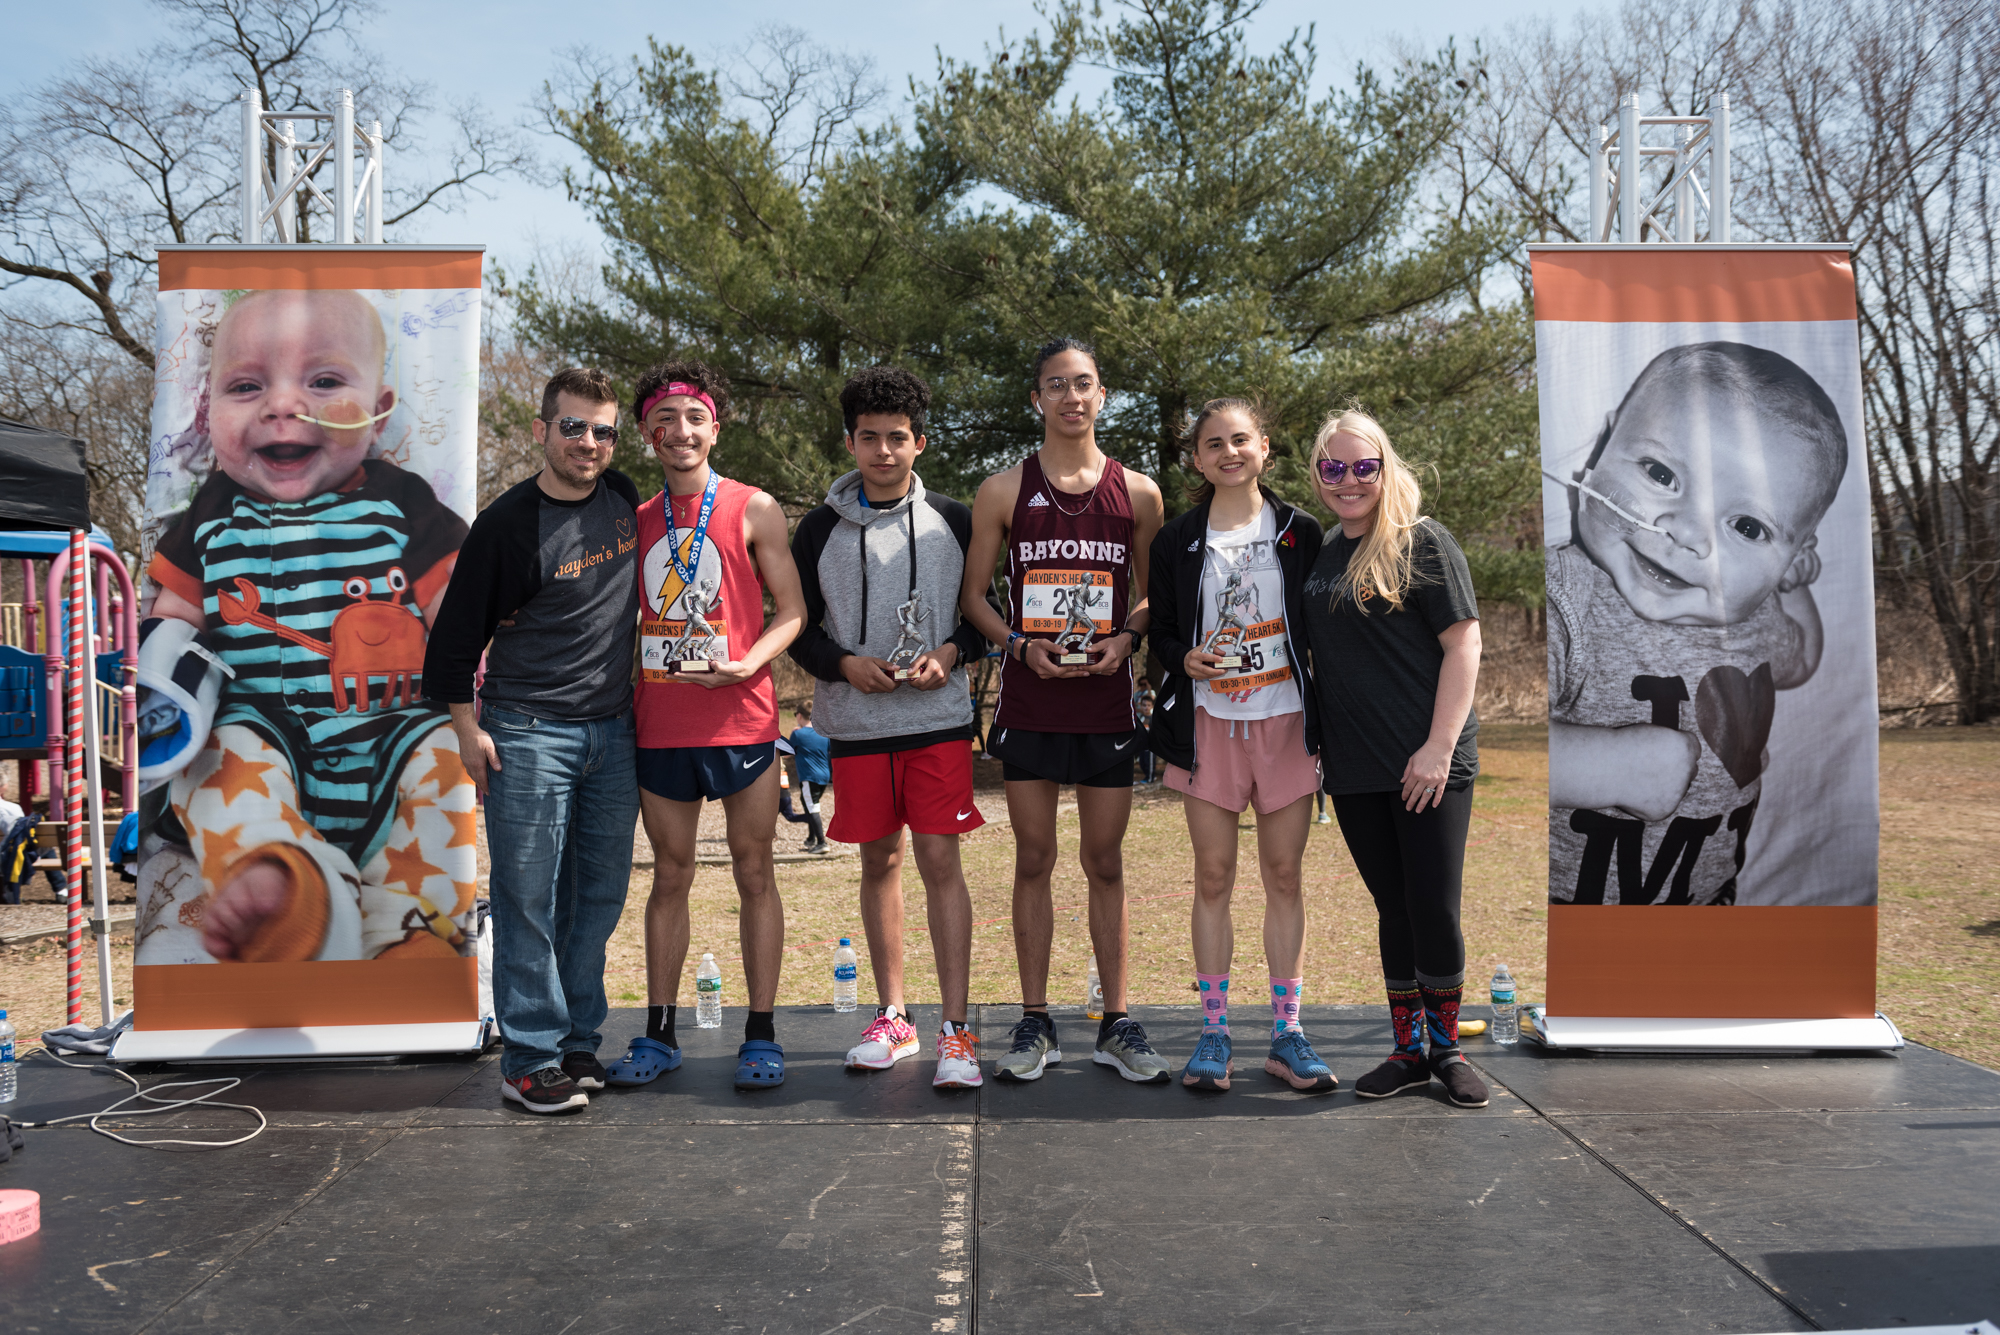 2019-03-30 Haydens Heart 5k - Riverside County Park - North Arlington NJ-444.jpg